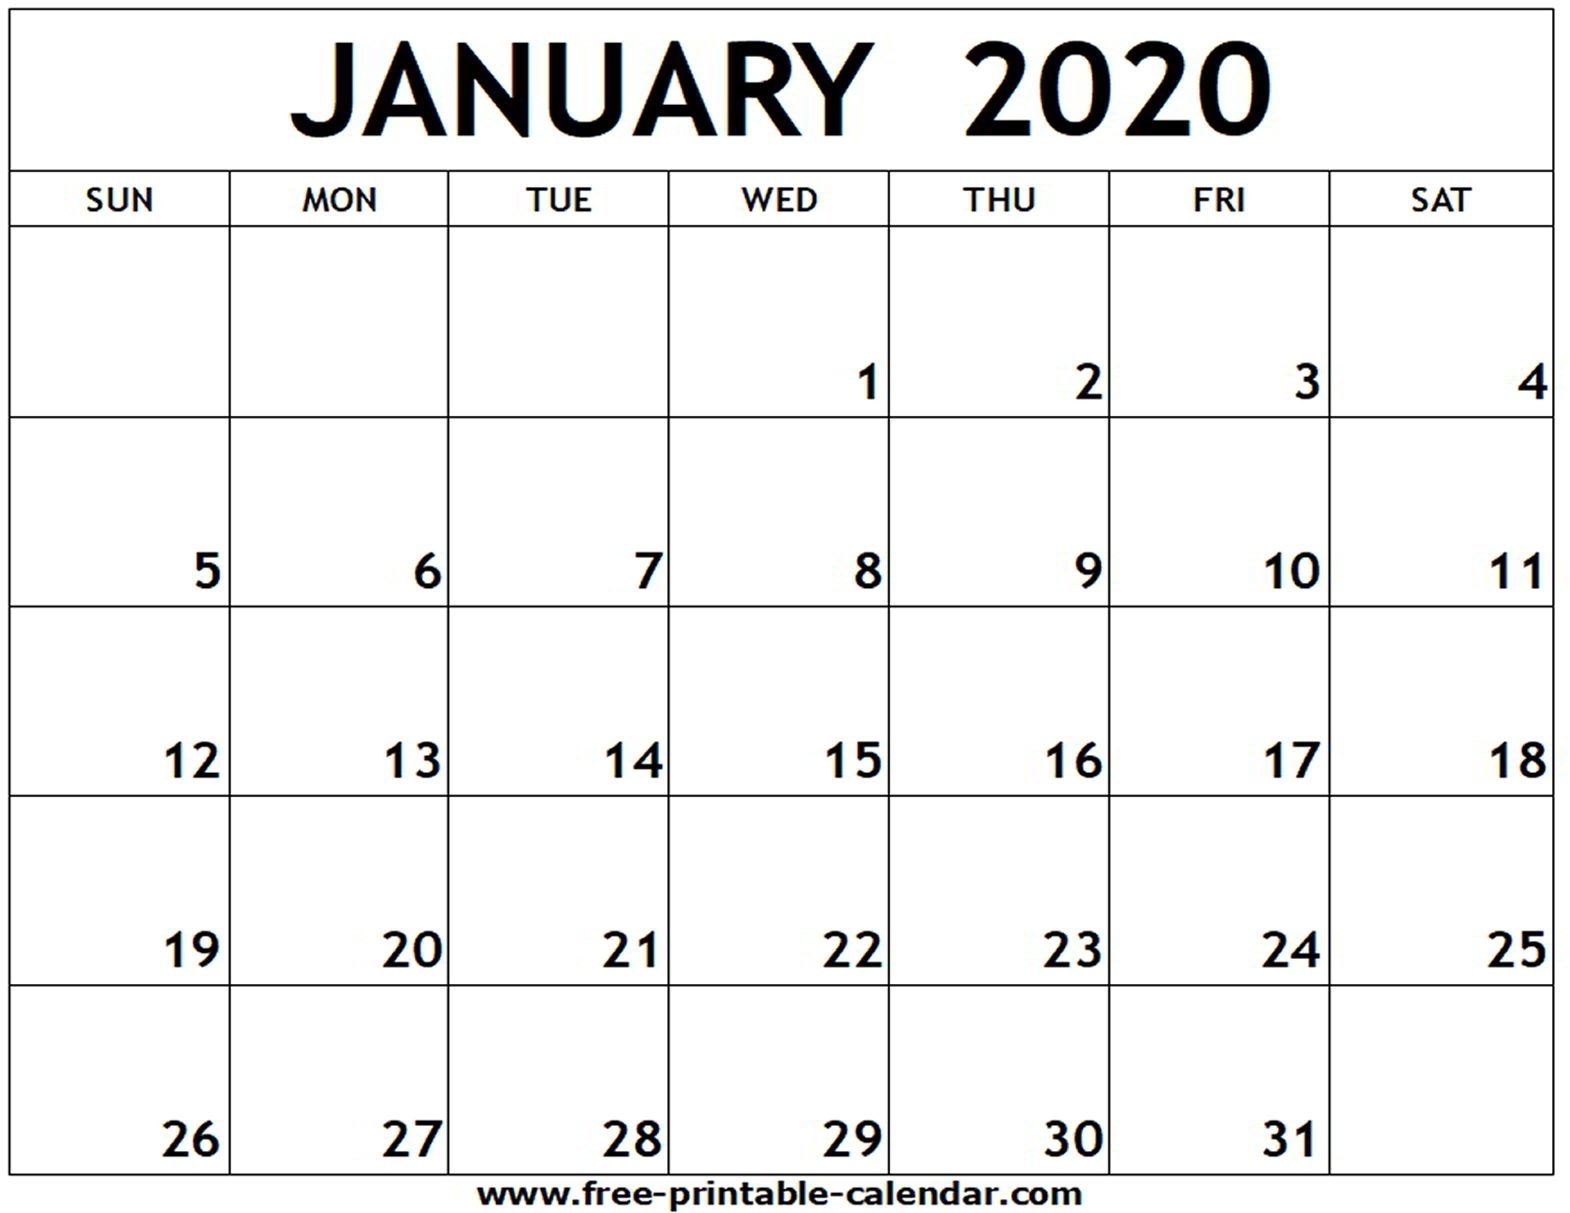 Free Printable 2020 Calendar To I Can Edit – Calendar Calender You Cann Edit With Holidays On It